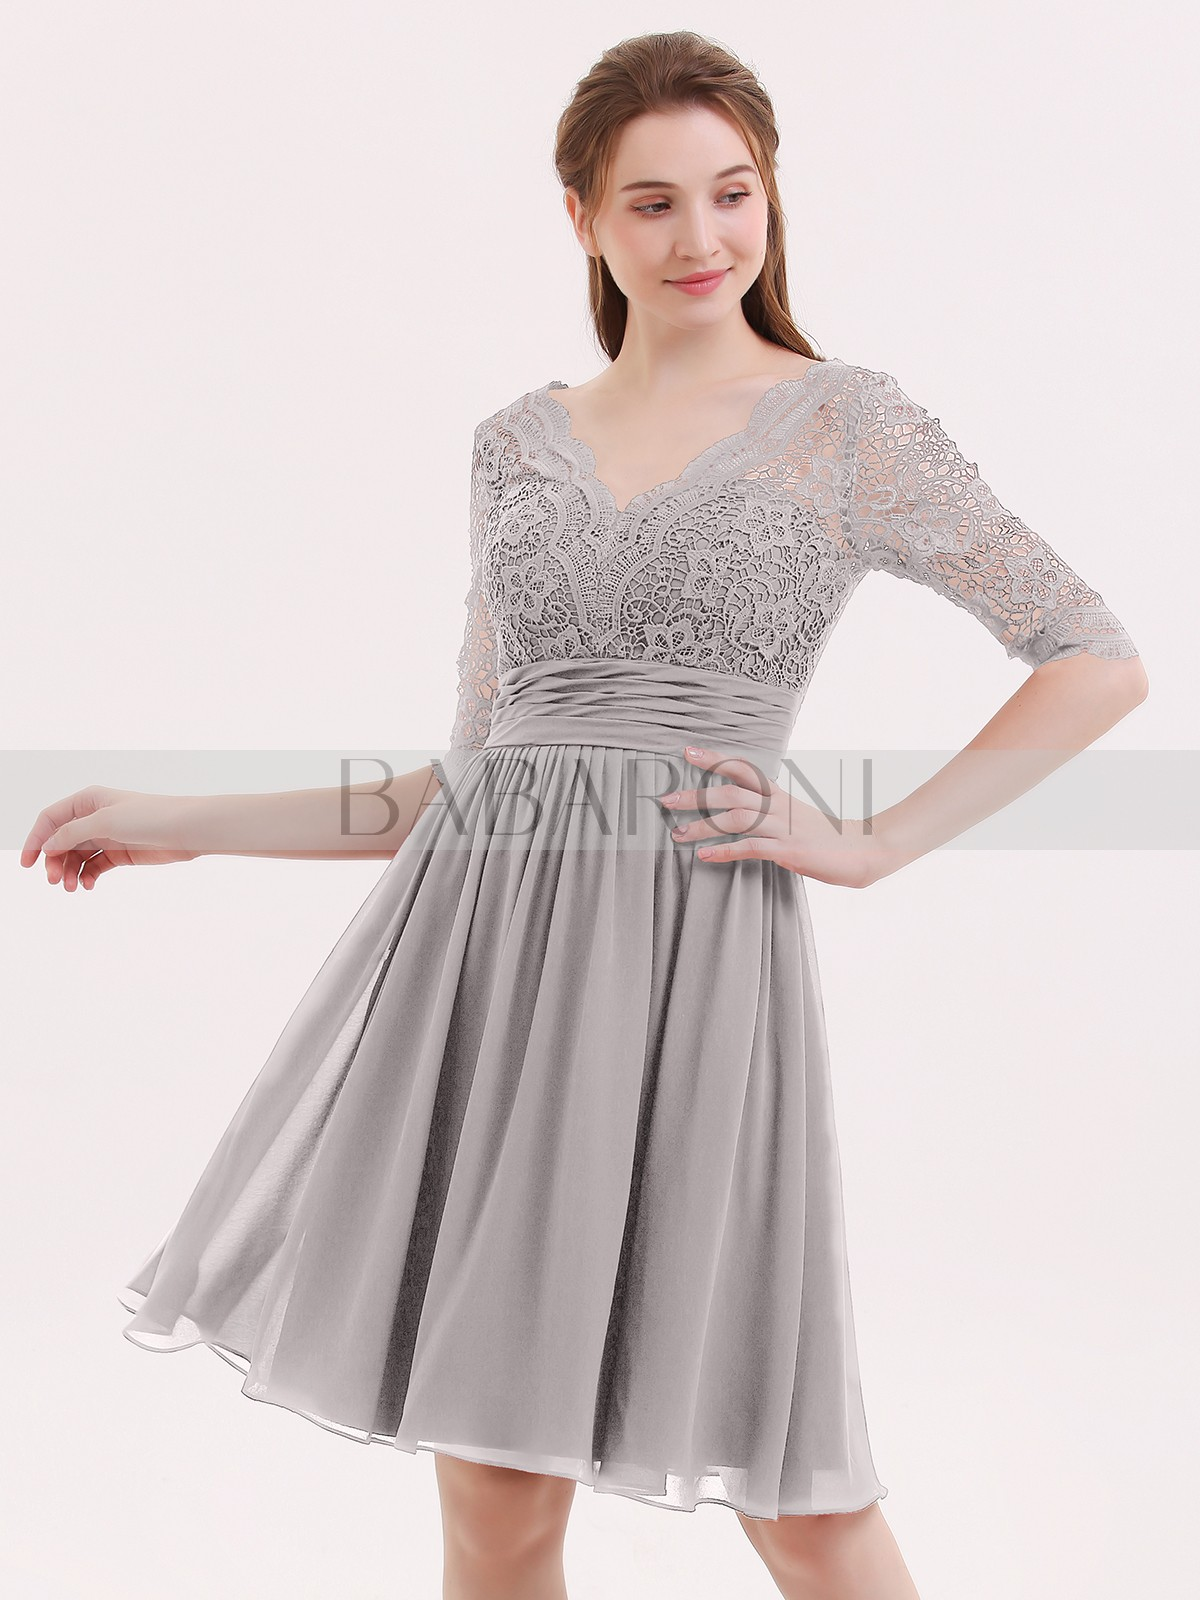 4a899428a Silver Alexia Lace and Chiffon Short Dress with Half Sleeves